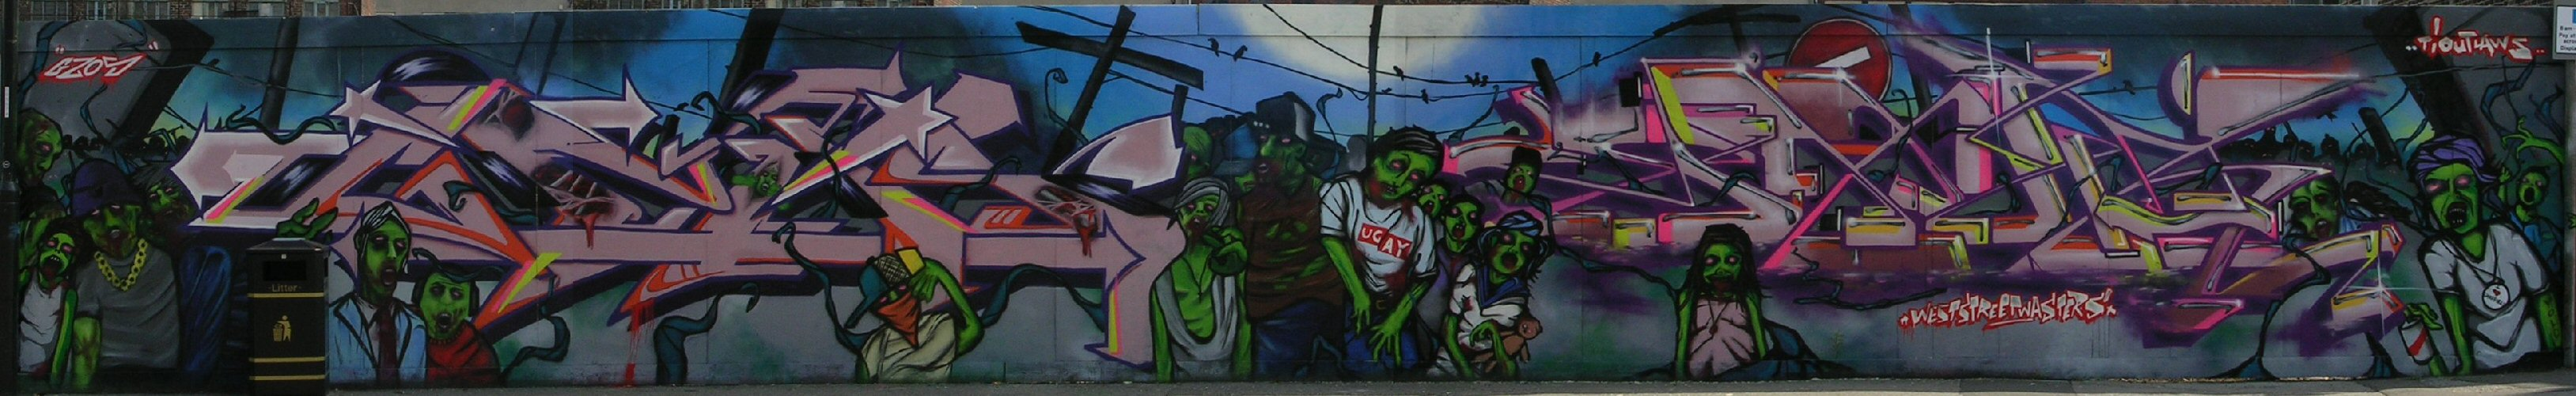 Zombies panorama by Gzos and Jaer - 18 June 2013